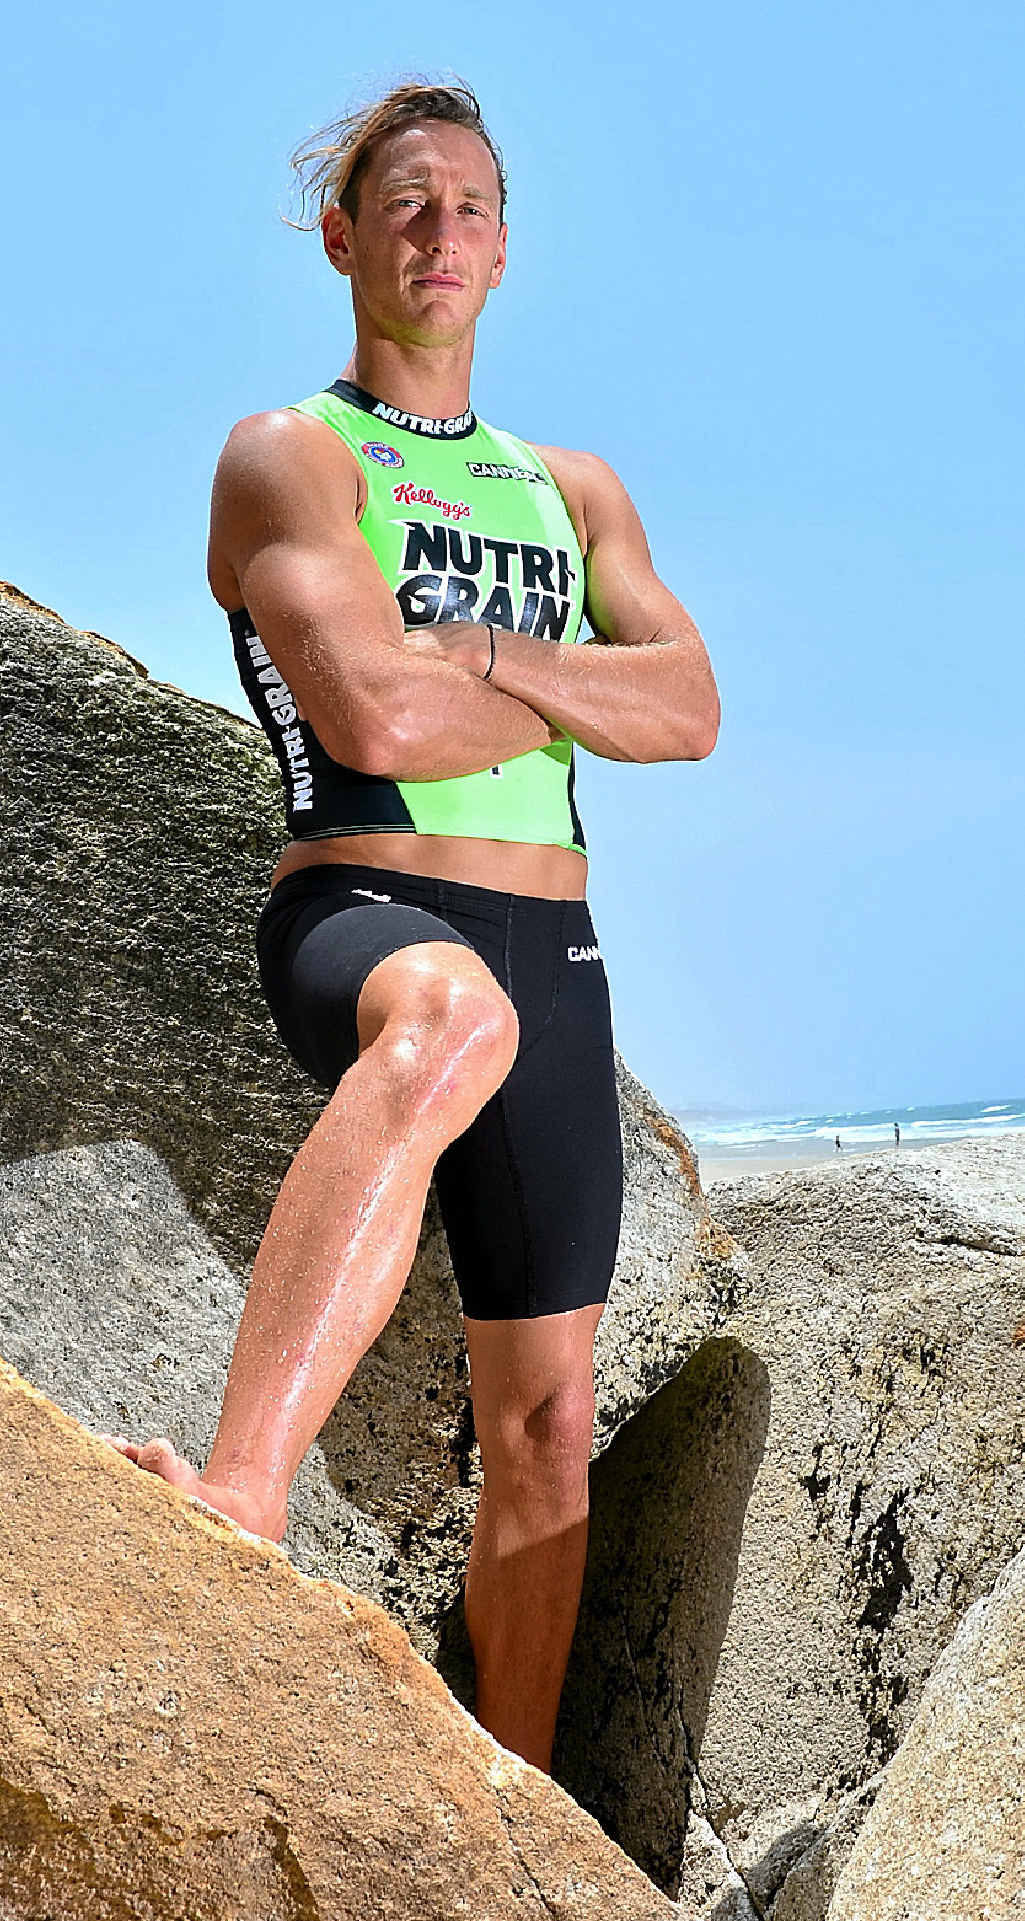 Ali Day is primed for this weekend's opening rounds of the Nutri-Grain Ironman Series at Coolum.